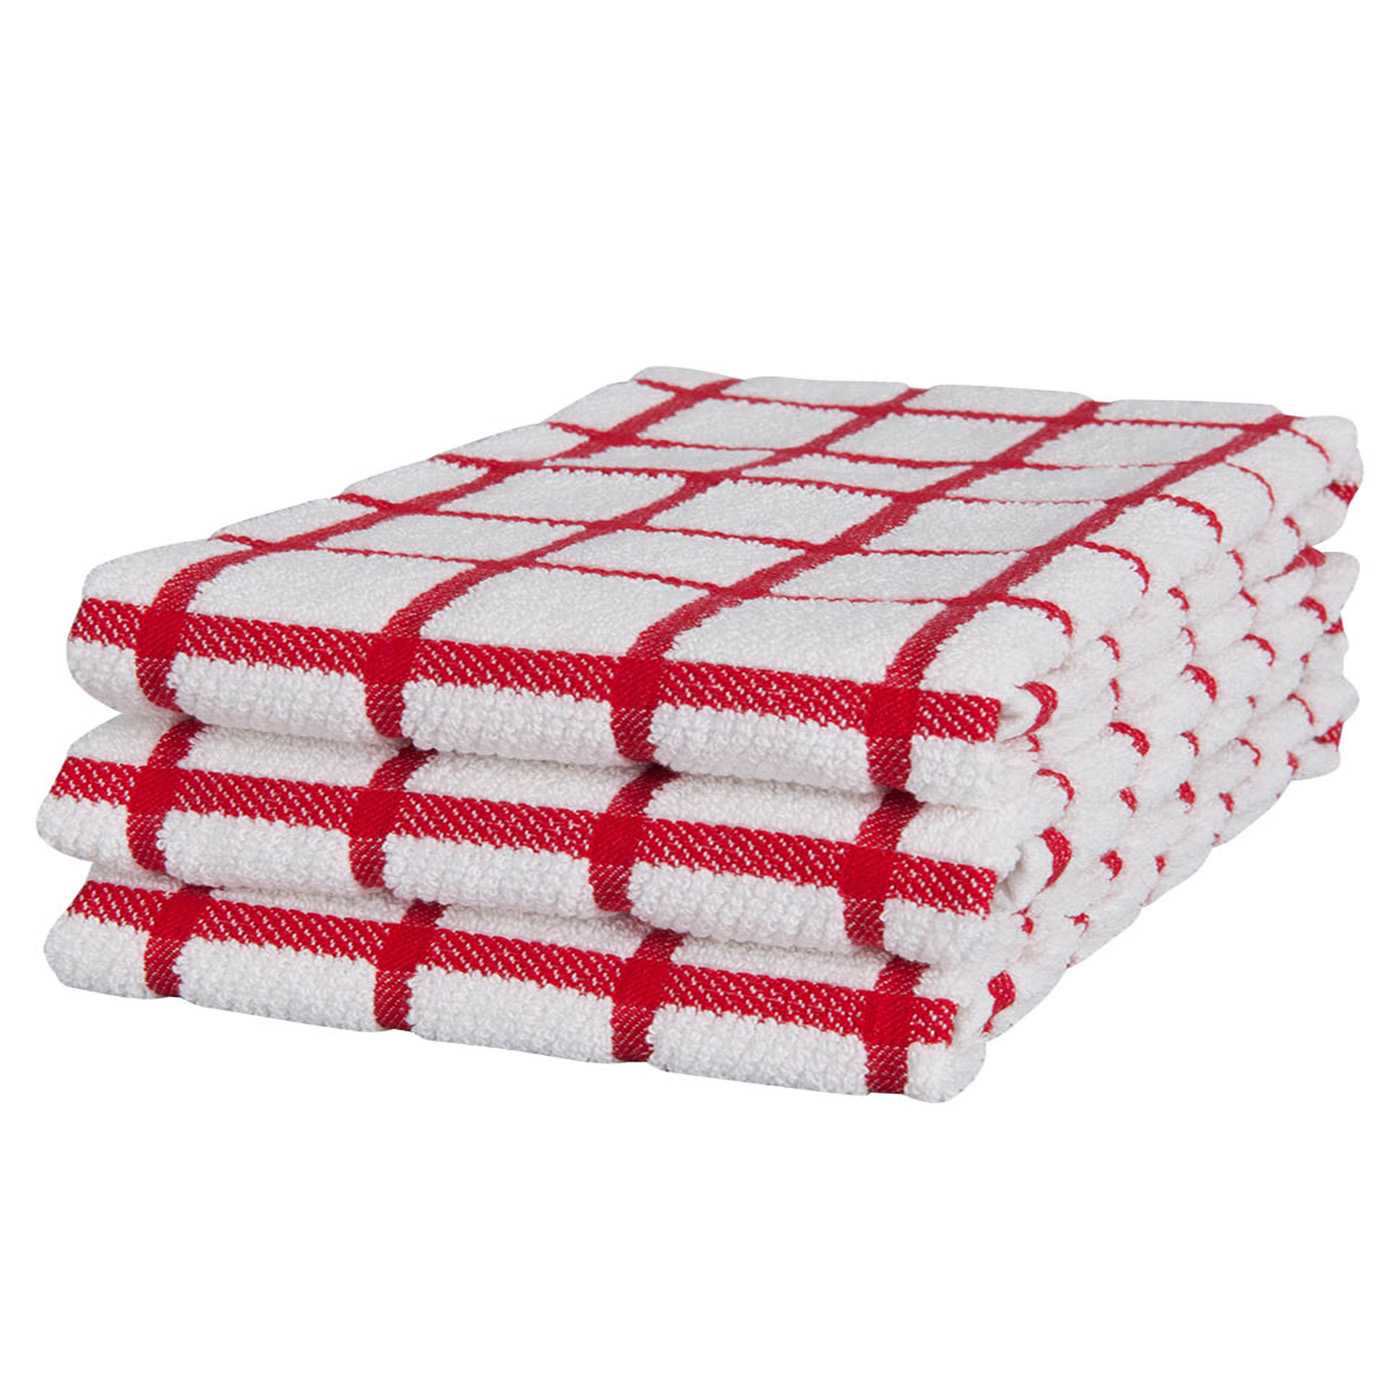 KAF Home Terry Towel Grid Set Of 3, Red